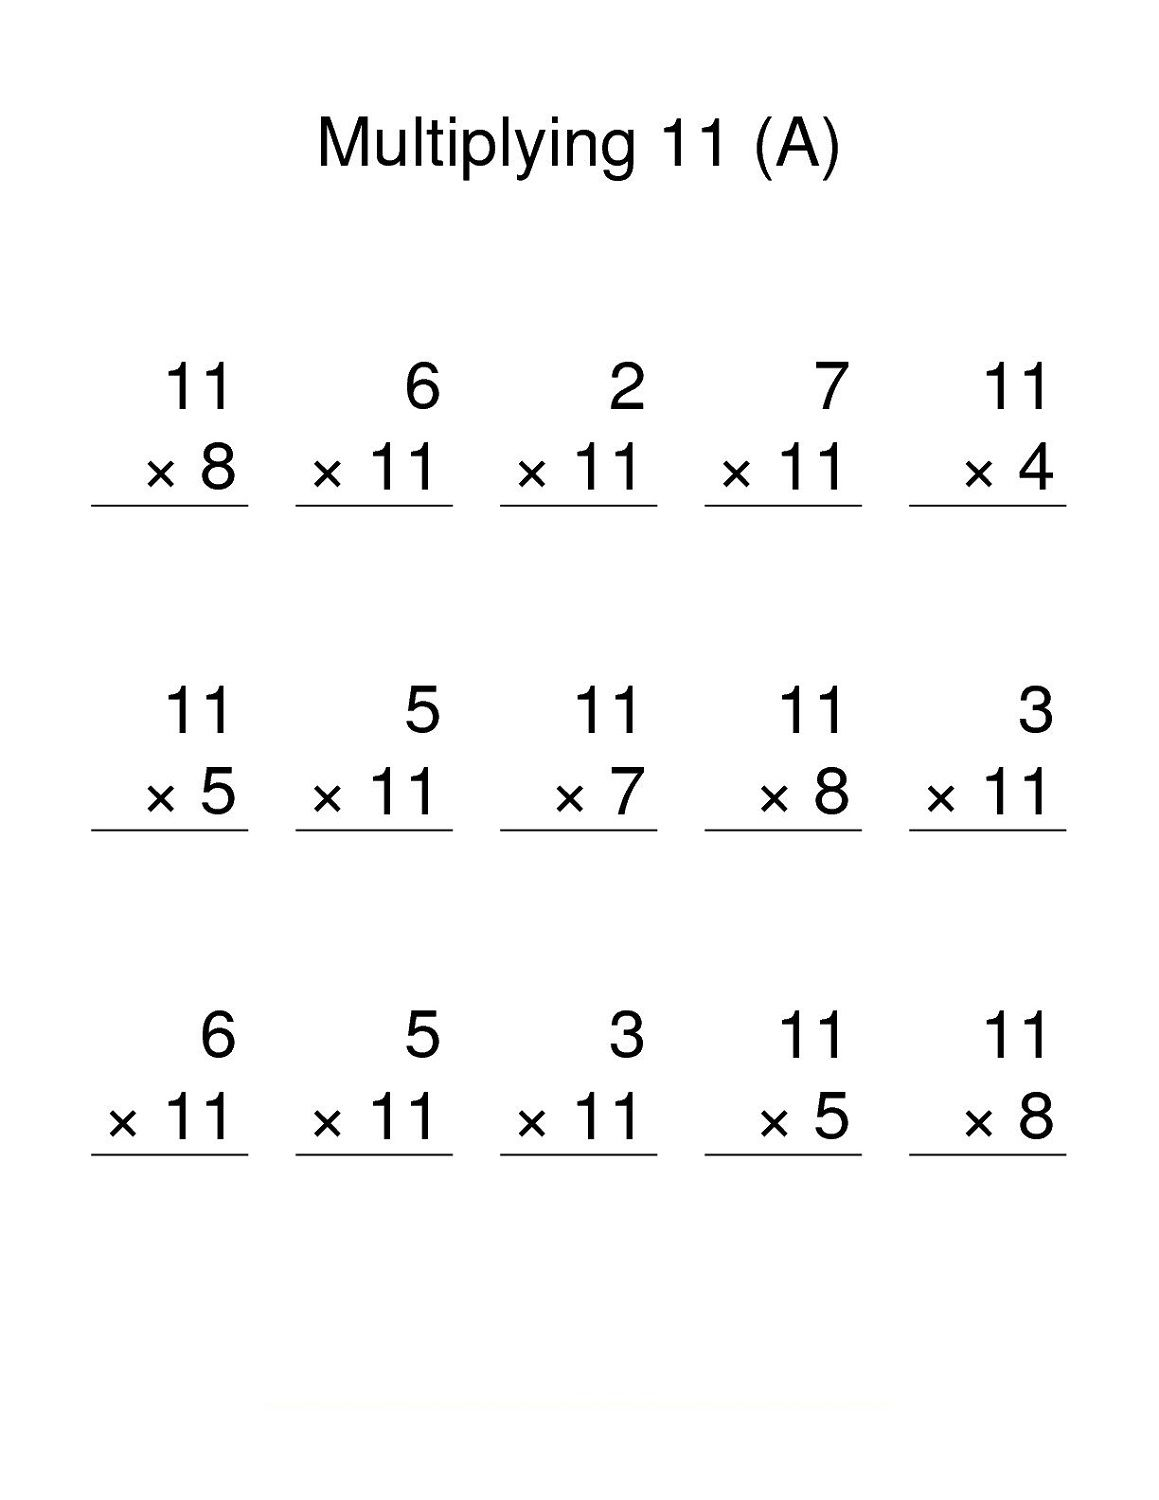 Free Printable 11 Times Table Worksheets In 2020 11 Times Table Times Tables Printable Math Worksheets